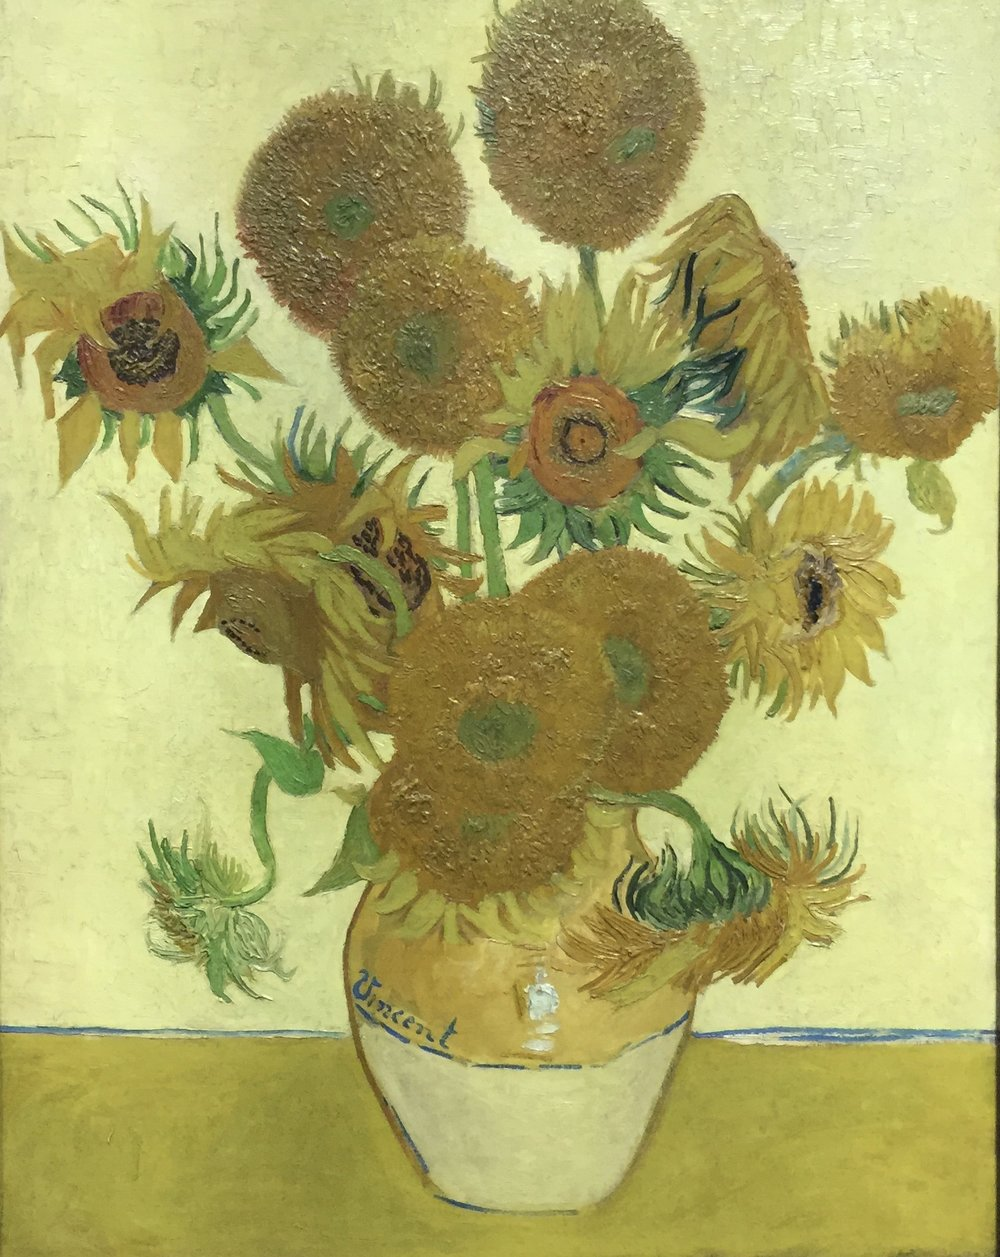 Van Gogh's Sunflowers in the National Gallery, London